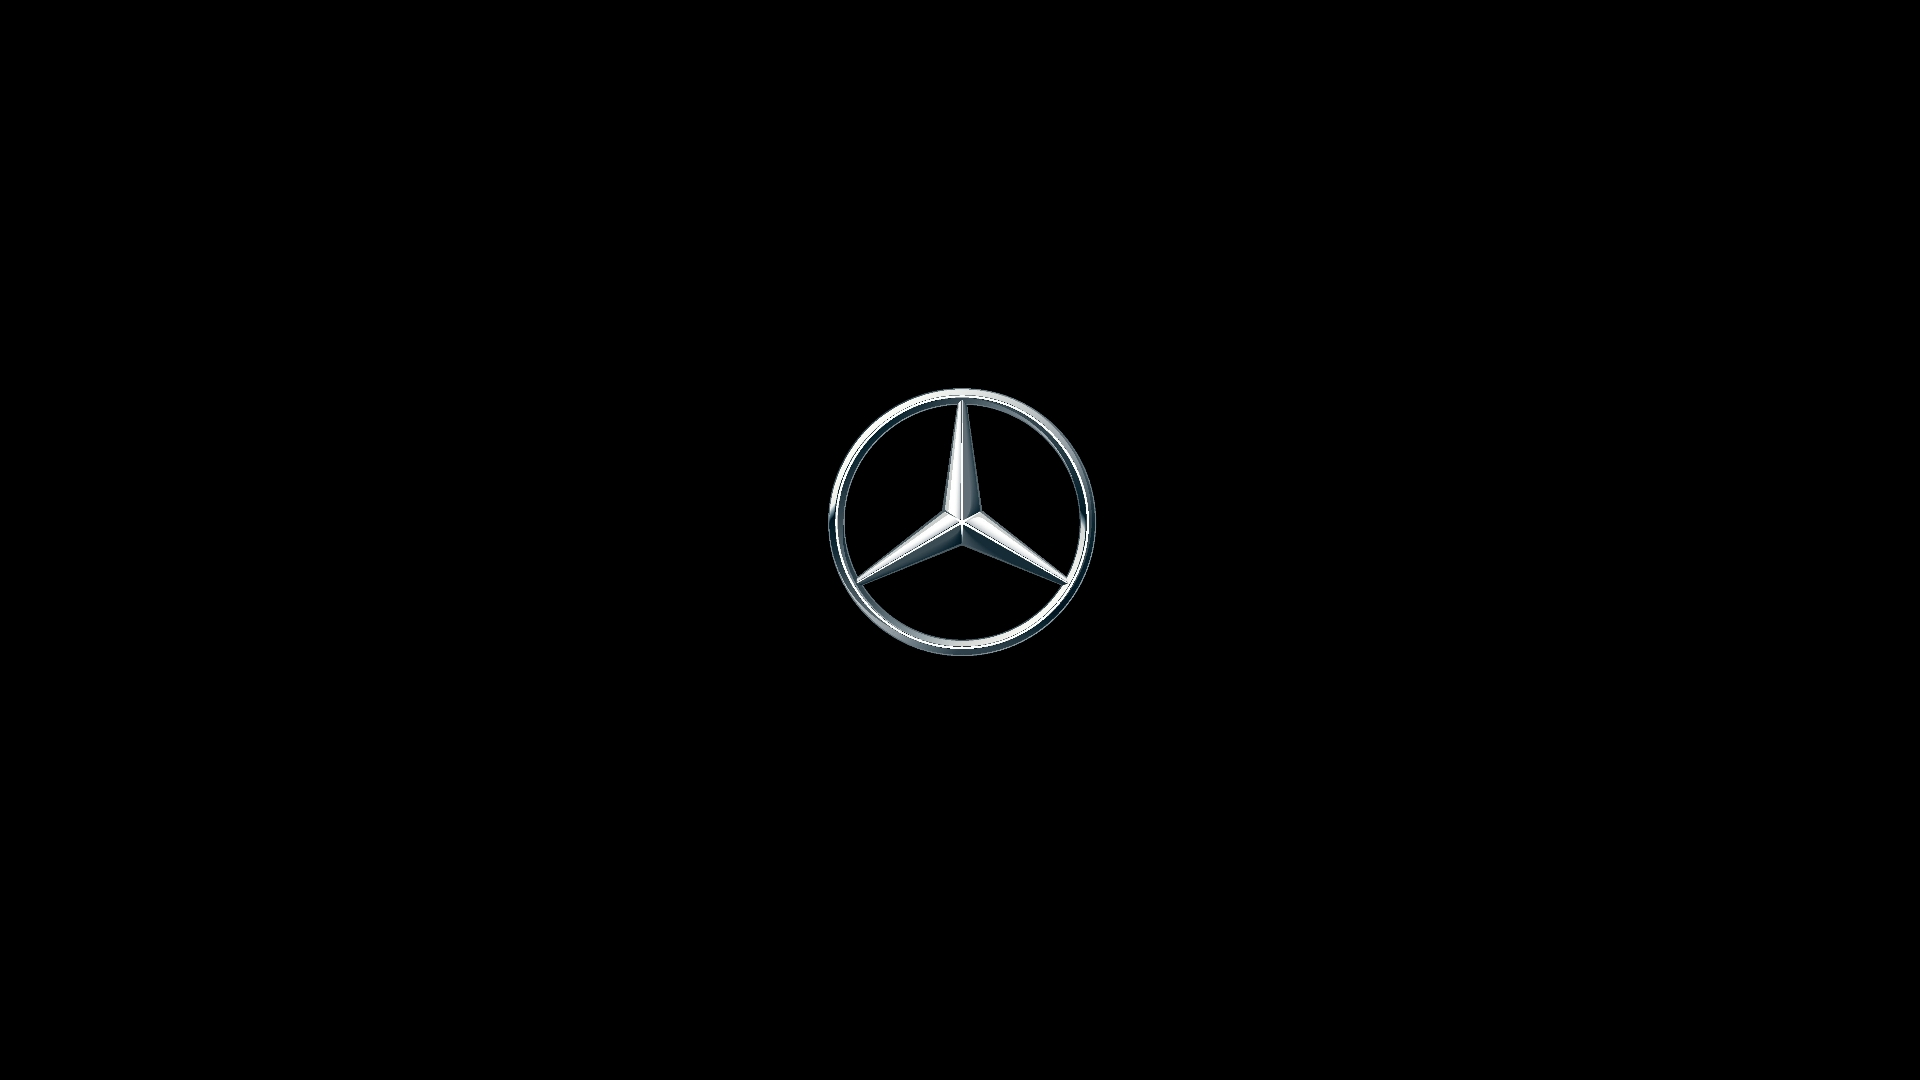 benz logo wallpapers wallpaper -#main